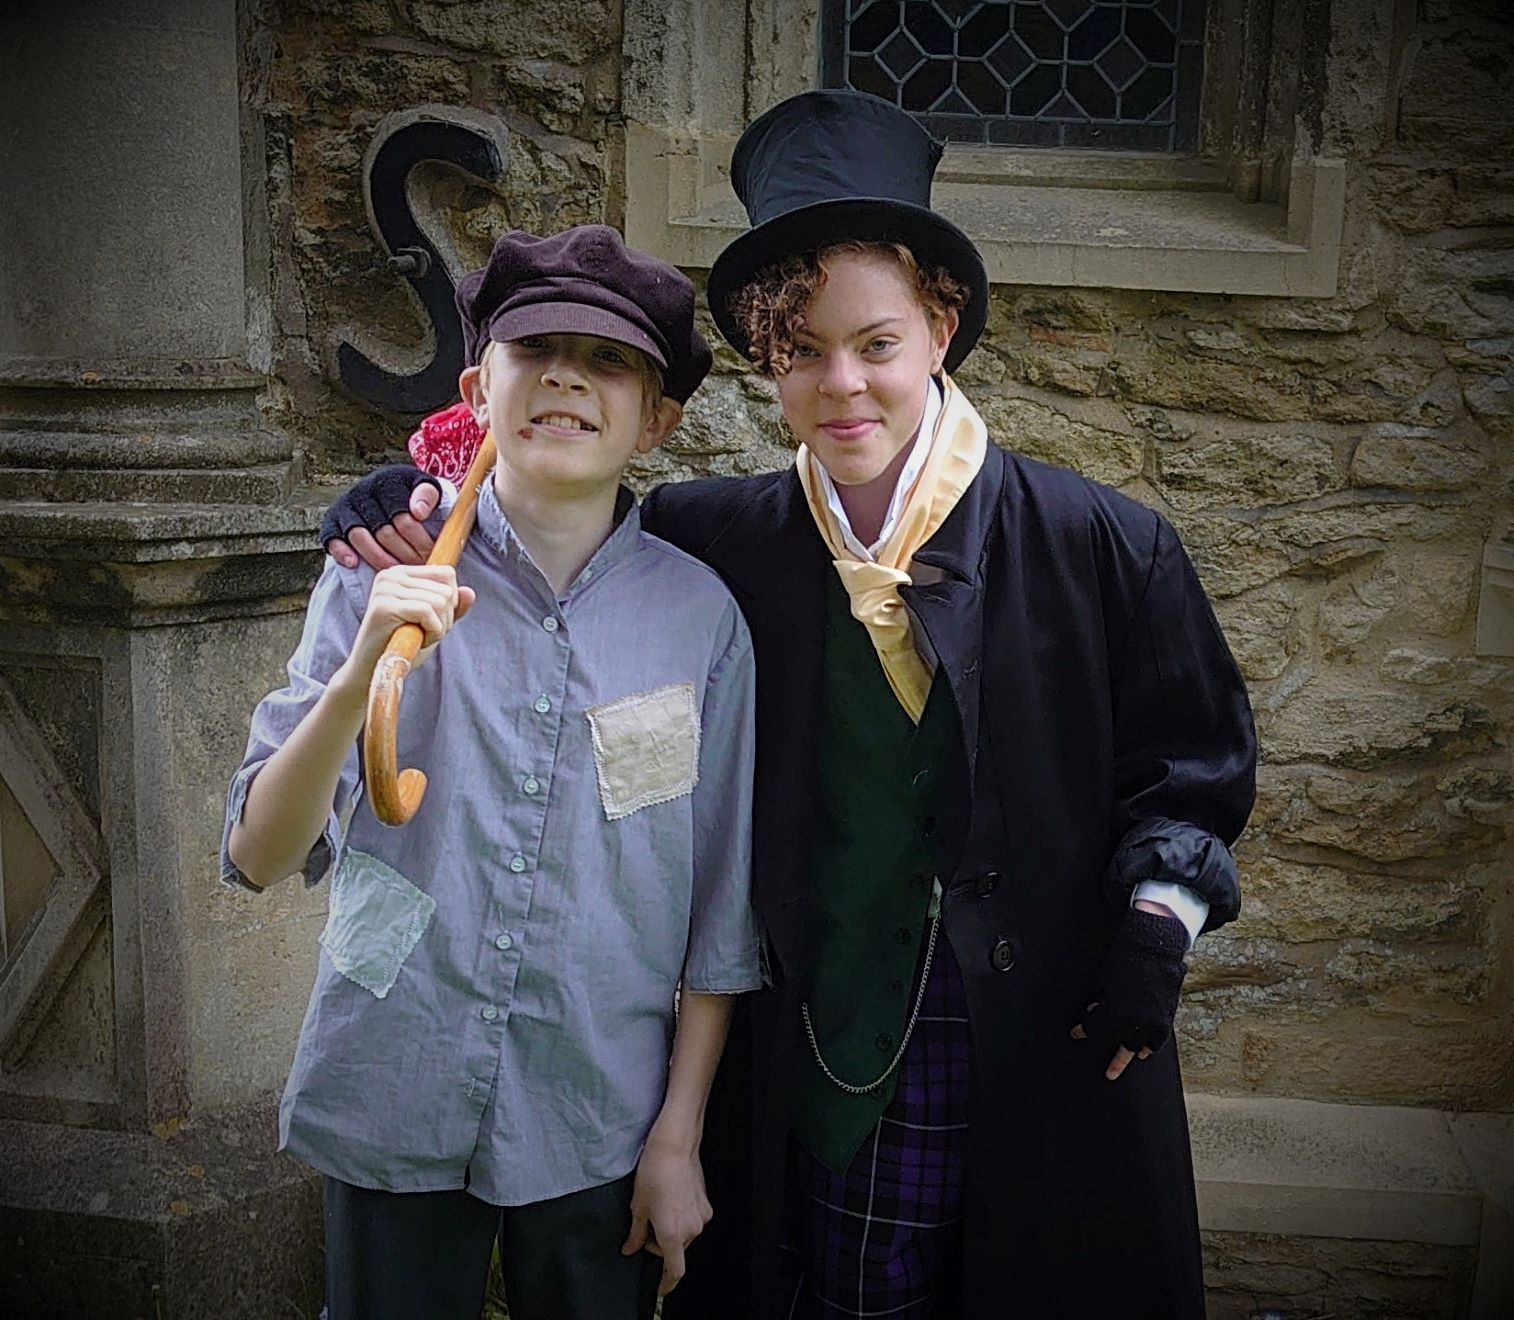 The Artful Dodger with his arm round Oliver's shoulders in front of a stone wall.